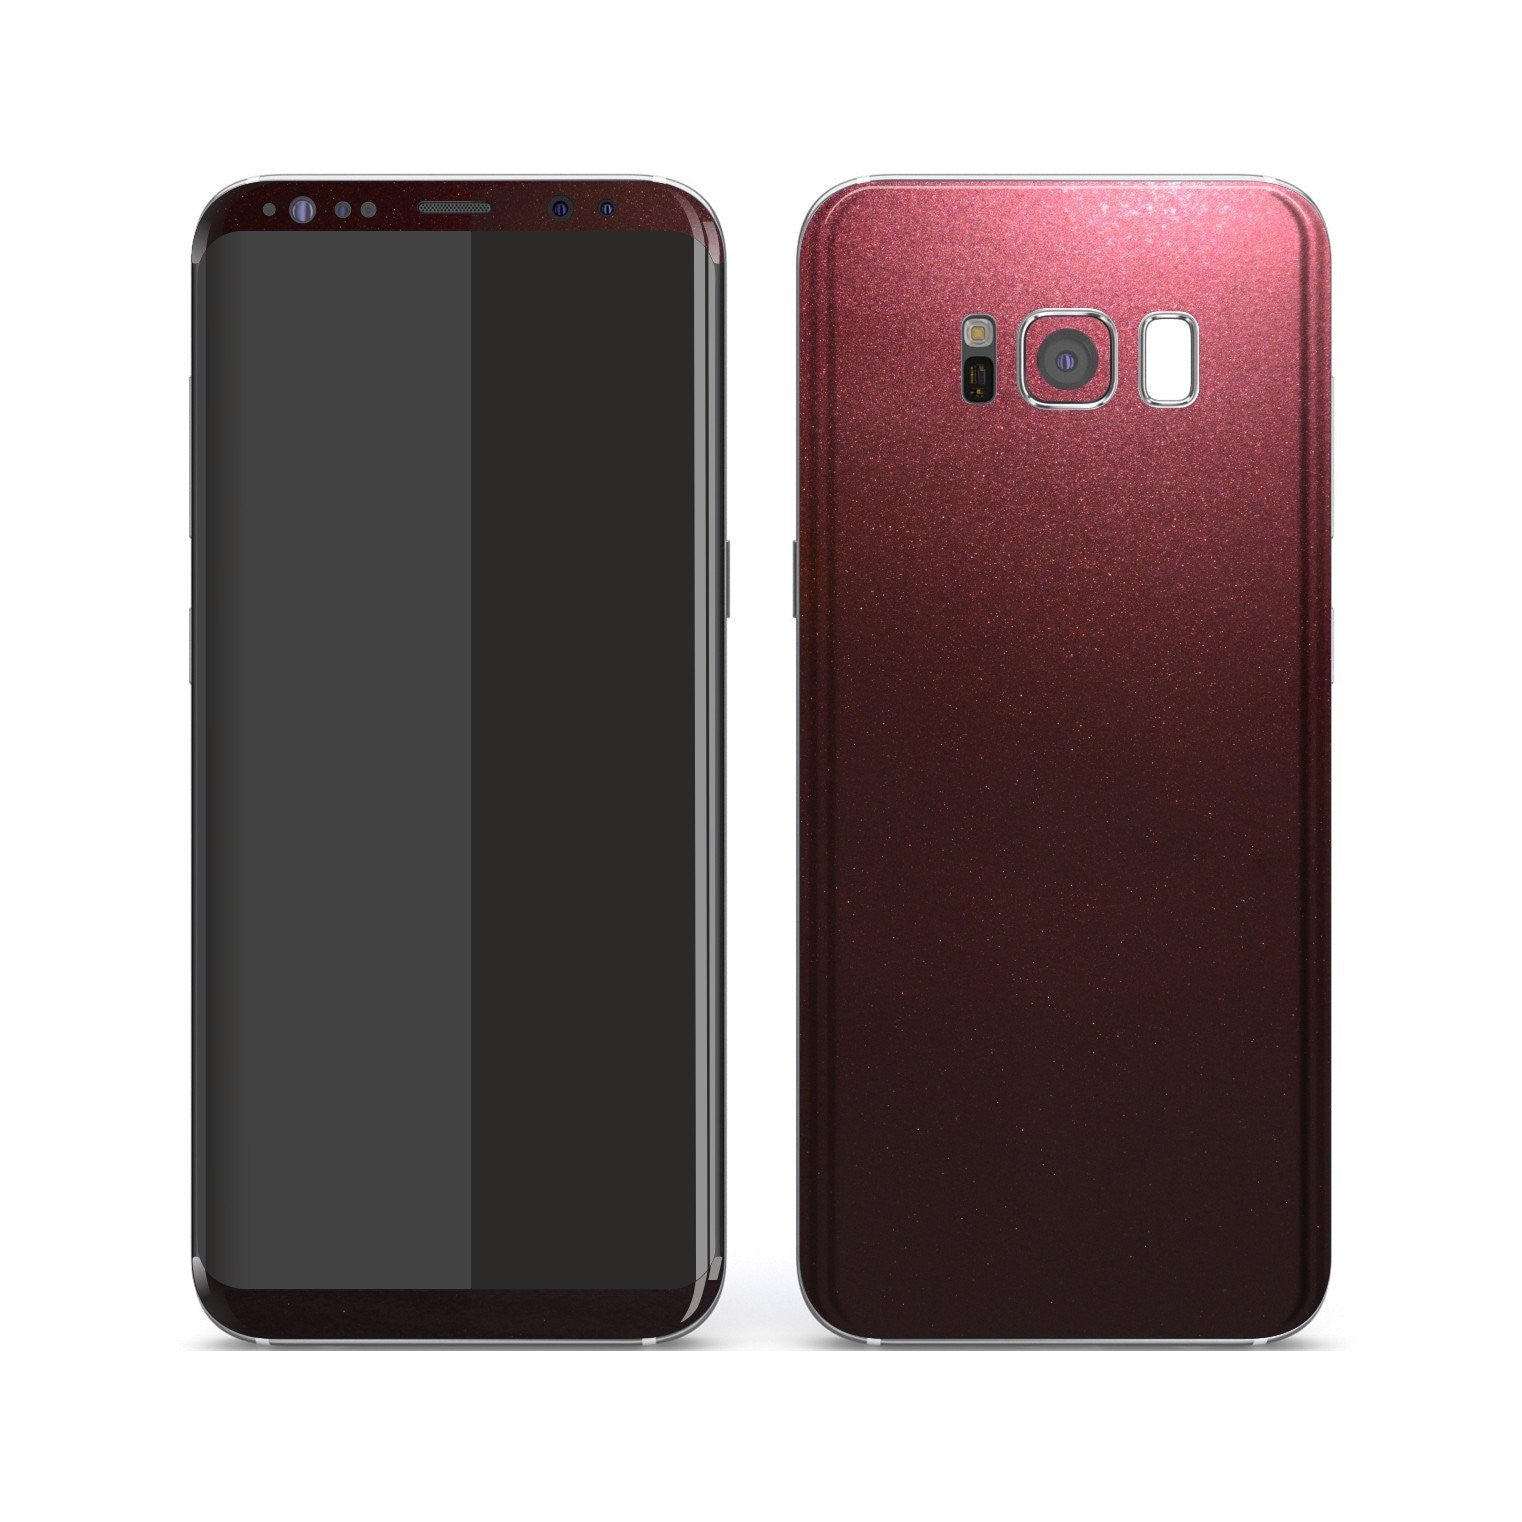 Samsung Galaxy S8 Black Rose Glossy Metallic Skin, Decal, Wrap, Protector, Cover by EasySkinz | EasySkinz.com